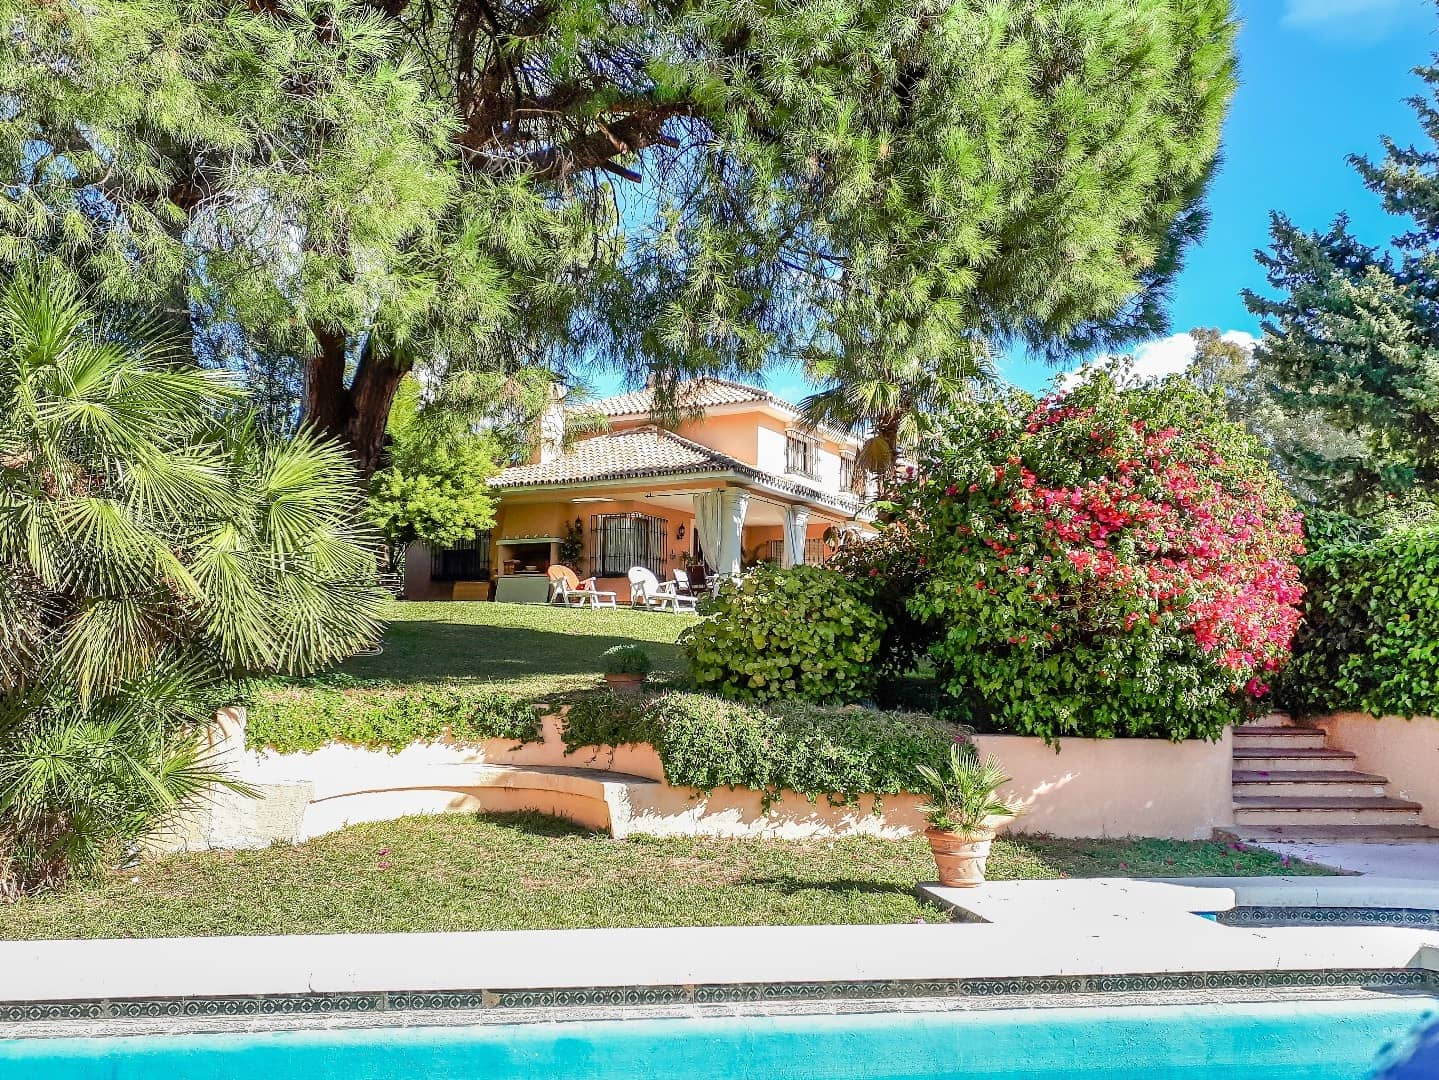 6 bedroom Villa for sale in Marbella with pool garage - € 1,325,000 (Ref: 3835532)